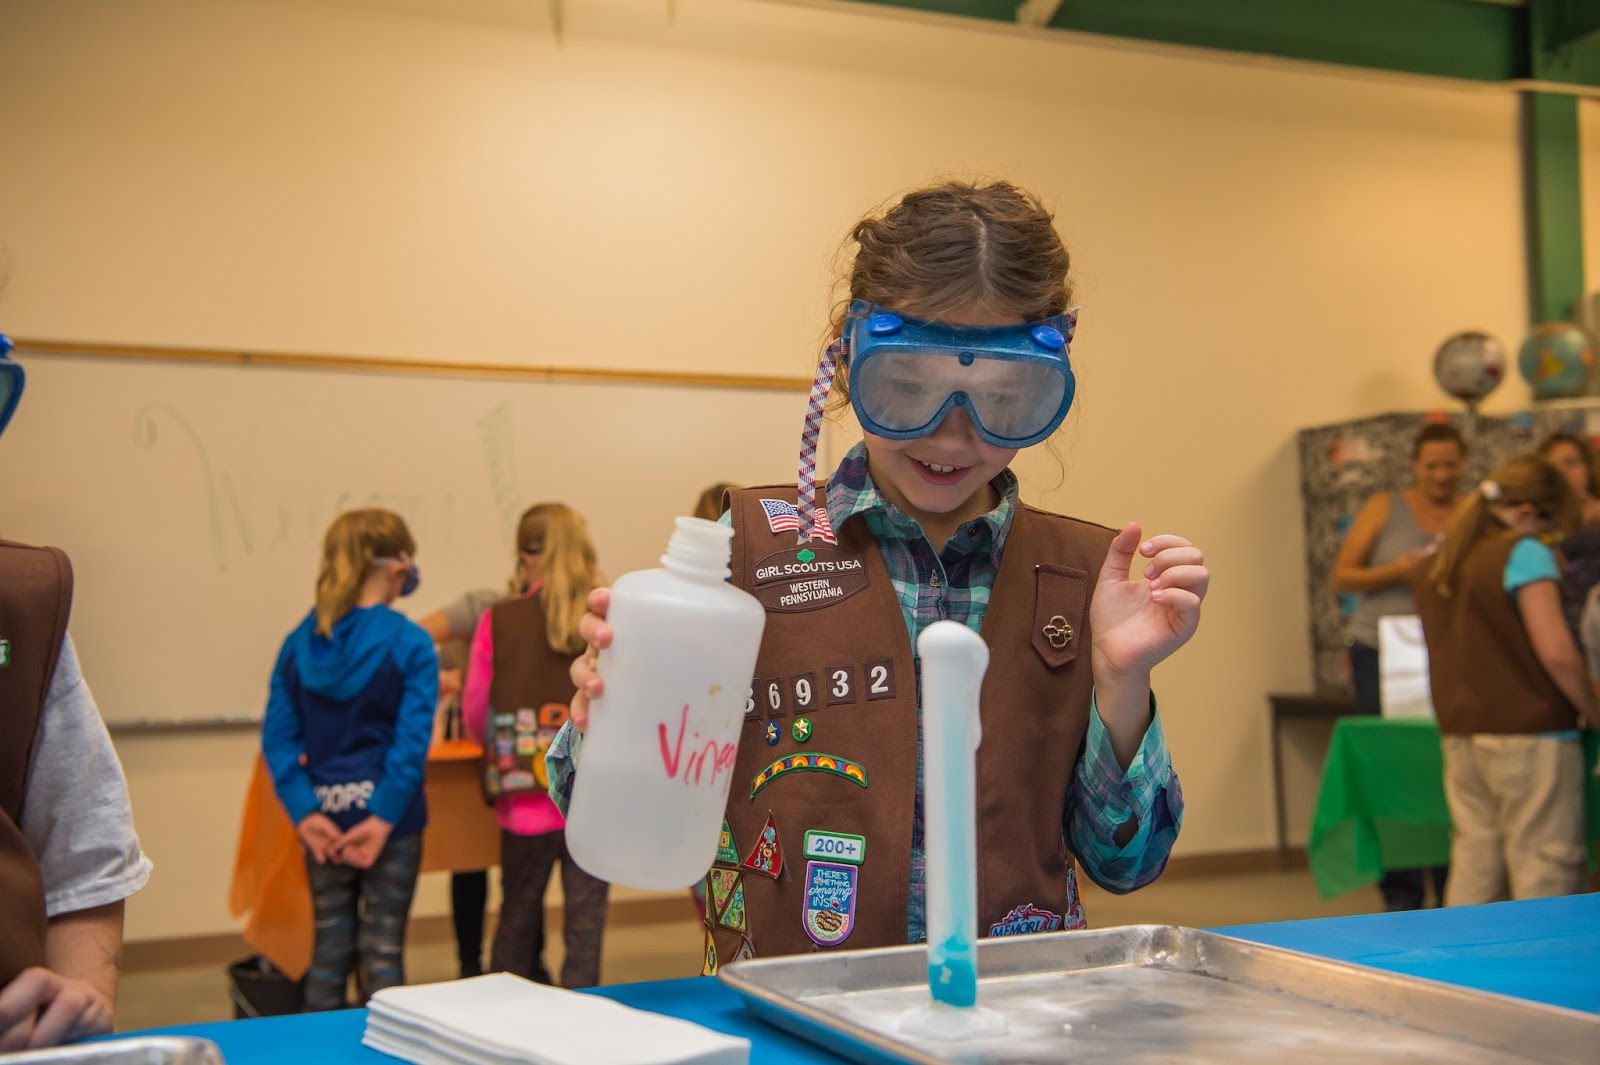 Girl scouts western pennsylvania girl scouts explore the fun eighty one percent of all high school girls are interested in pursuing careers in science technology engineering and math stem but only 13 say it is publicscrutiny Gallery